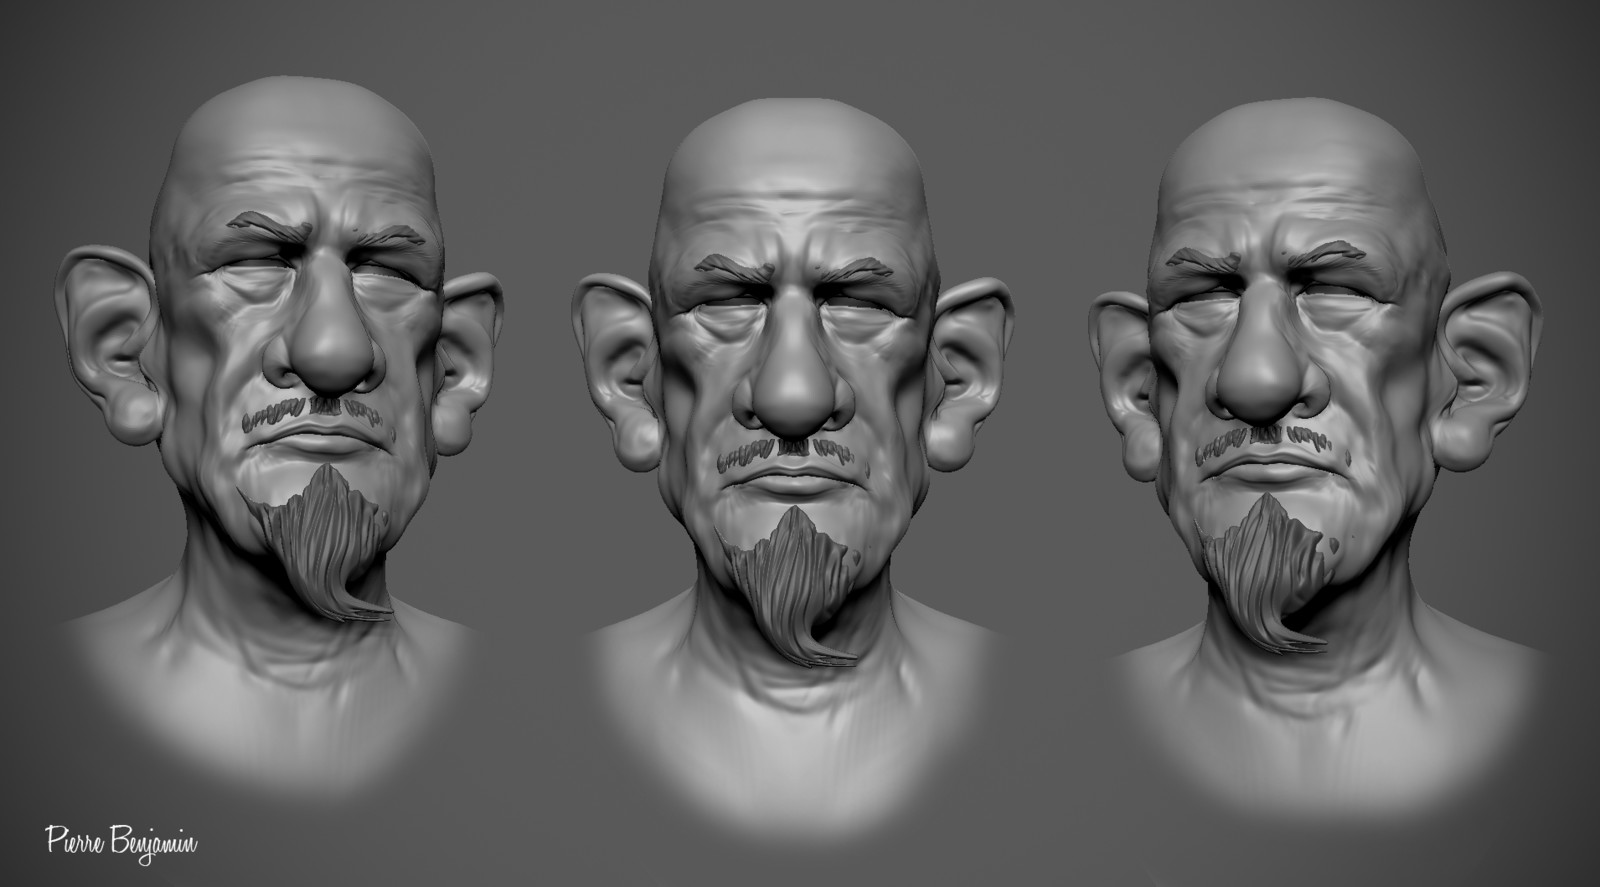 John steinbeck sculpt inspired by a caricature by C F Payne